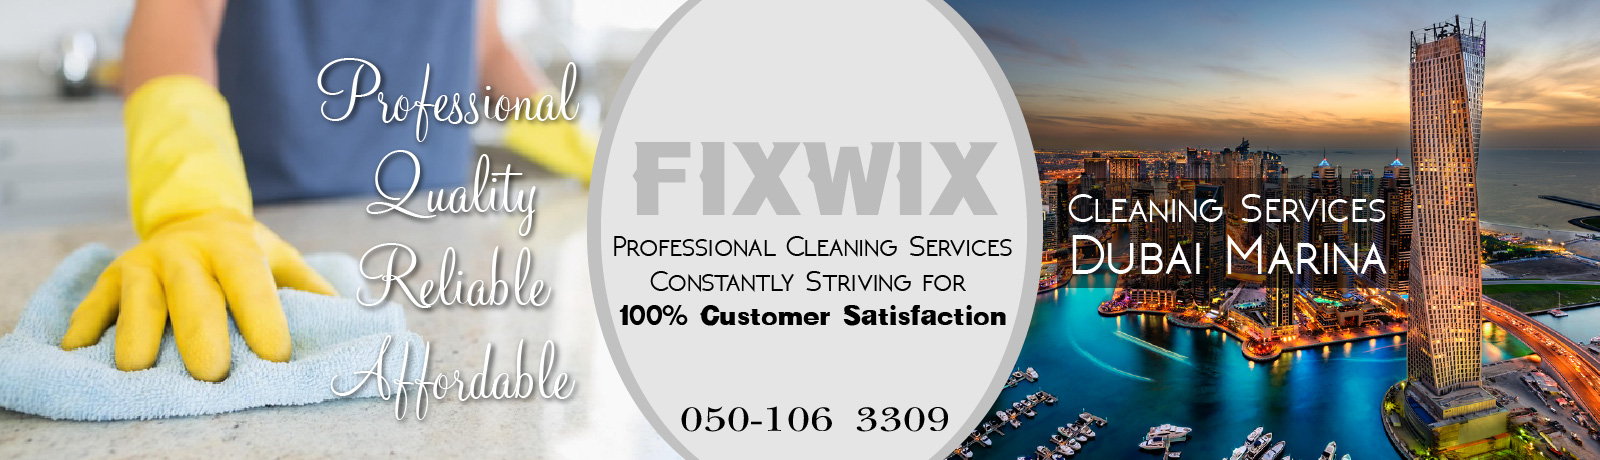 Cleaning-Services-Dubai-Marina